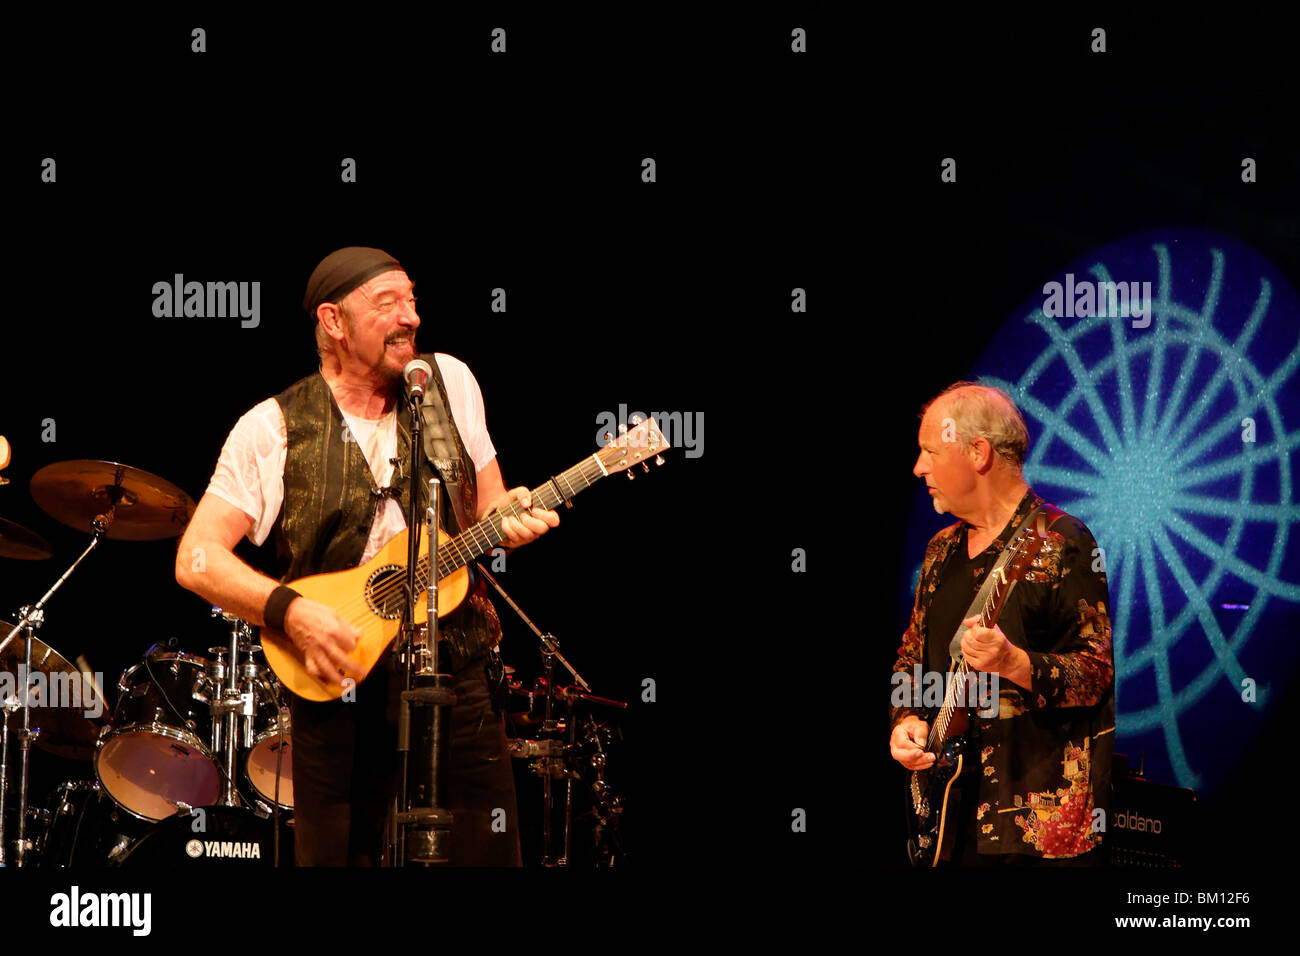 Ian Anderson and Martin Barre, Jethro Tull concert in Caesarea, Israel - Stock Image